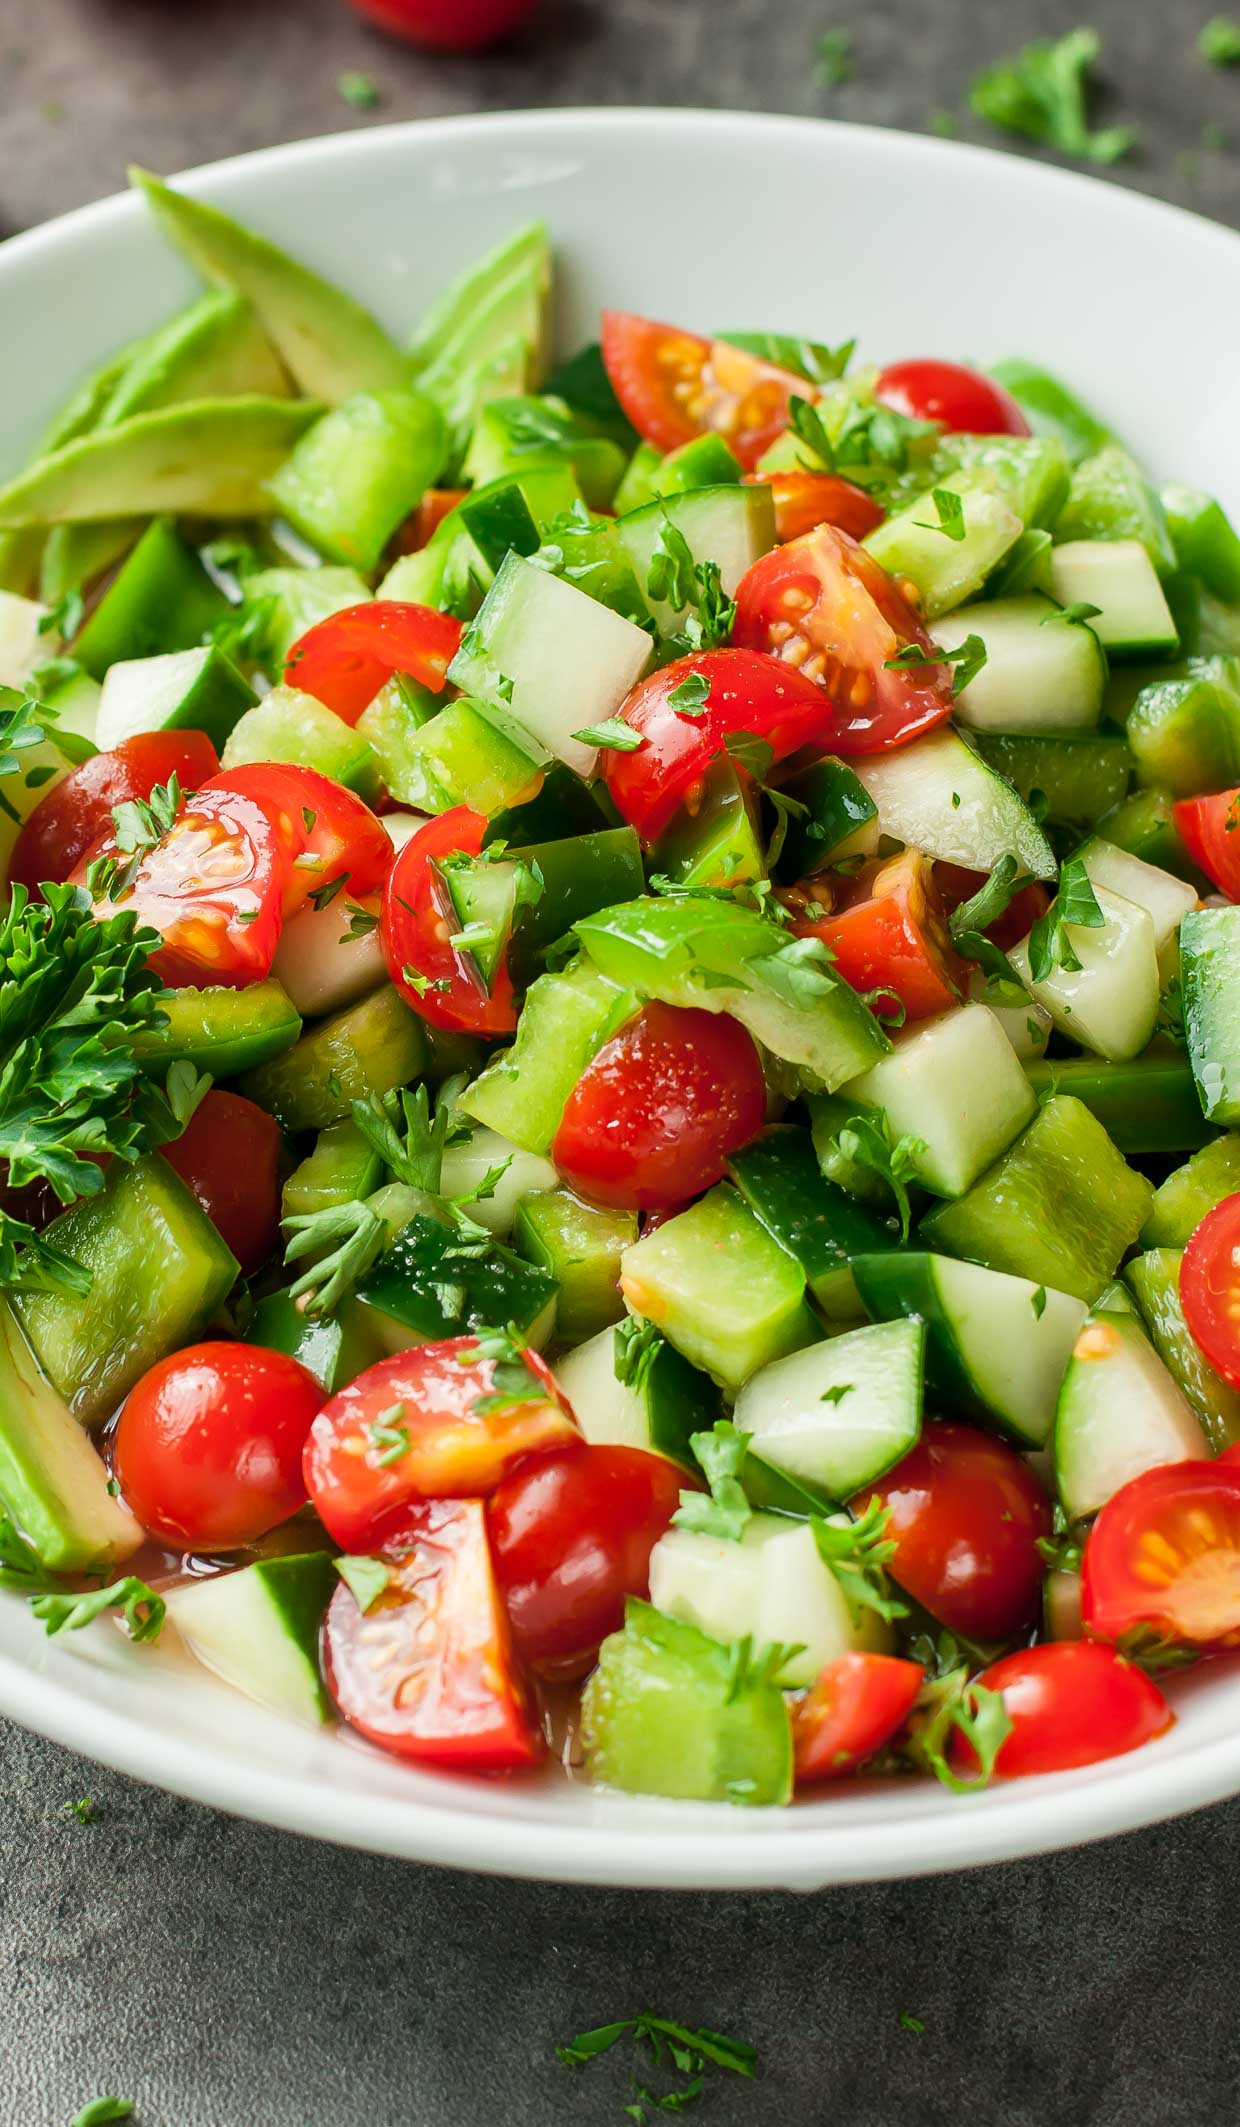 Healthy Recipes With Avocado  12 Tasty Recipes to Step Up Your Salad Game Peas And Crayons